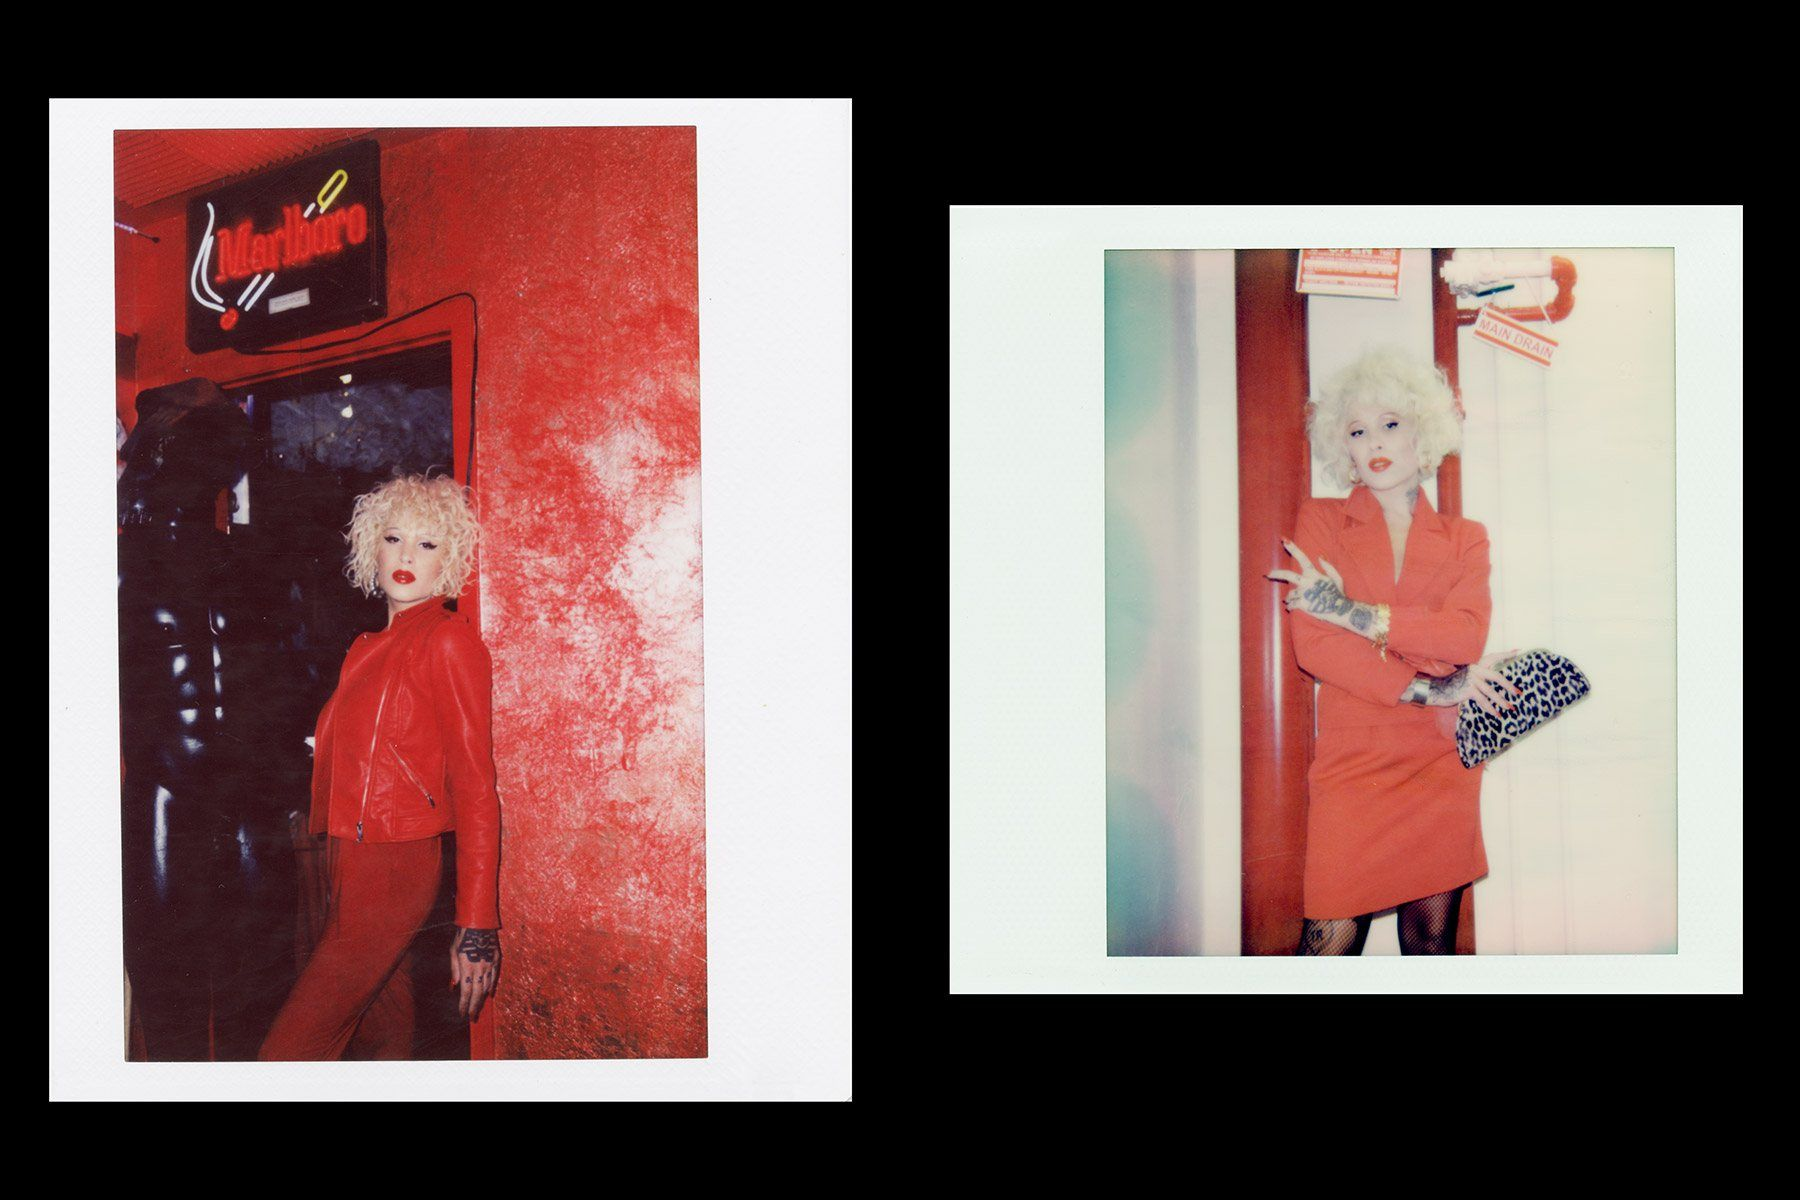 Polaroids of musician Neon Music photographed for Ponyboy magazine New York by Alexander Thompson.